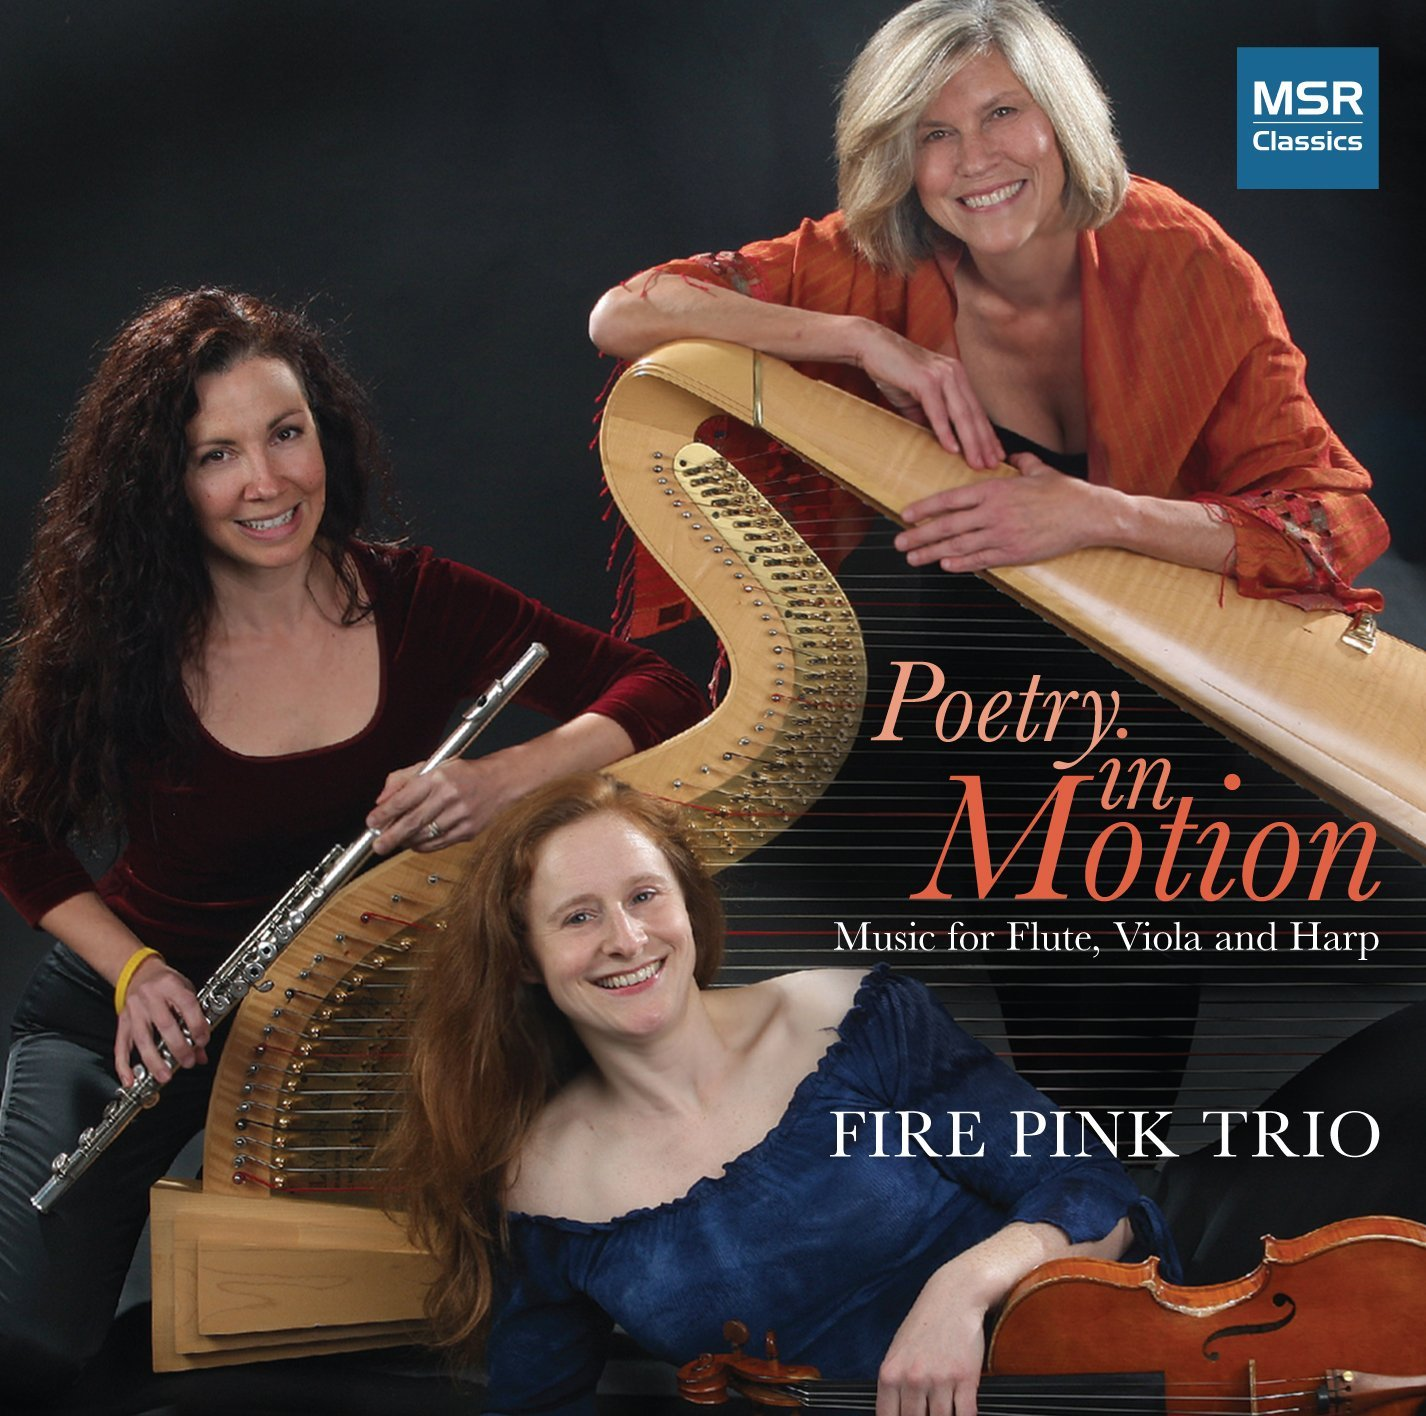 Poetry in Motion: Music for Flute, Viola and Harp (Fire Pink Trio)